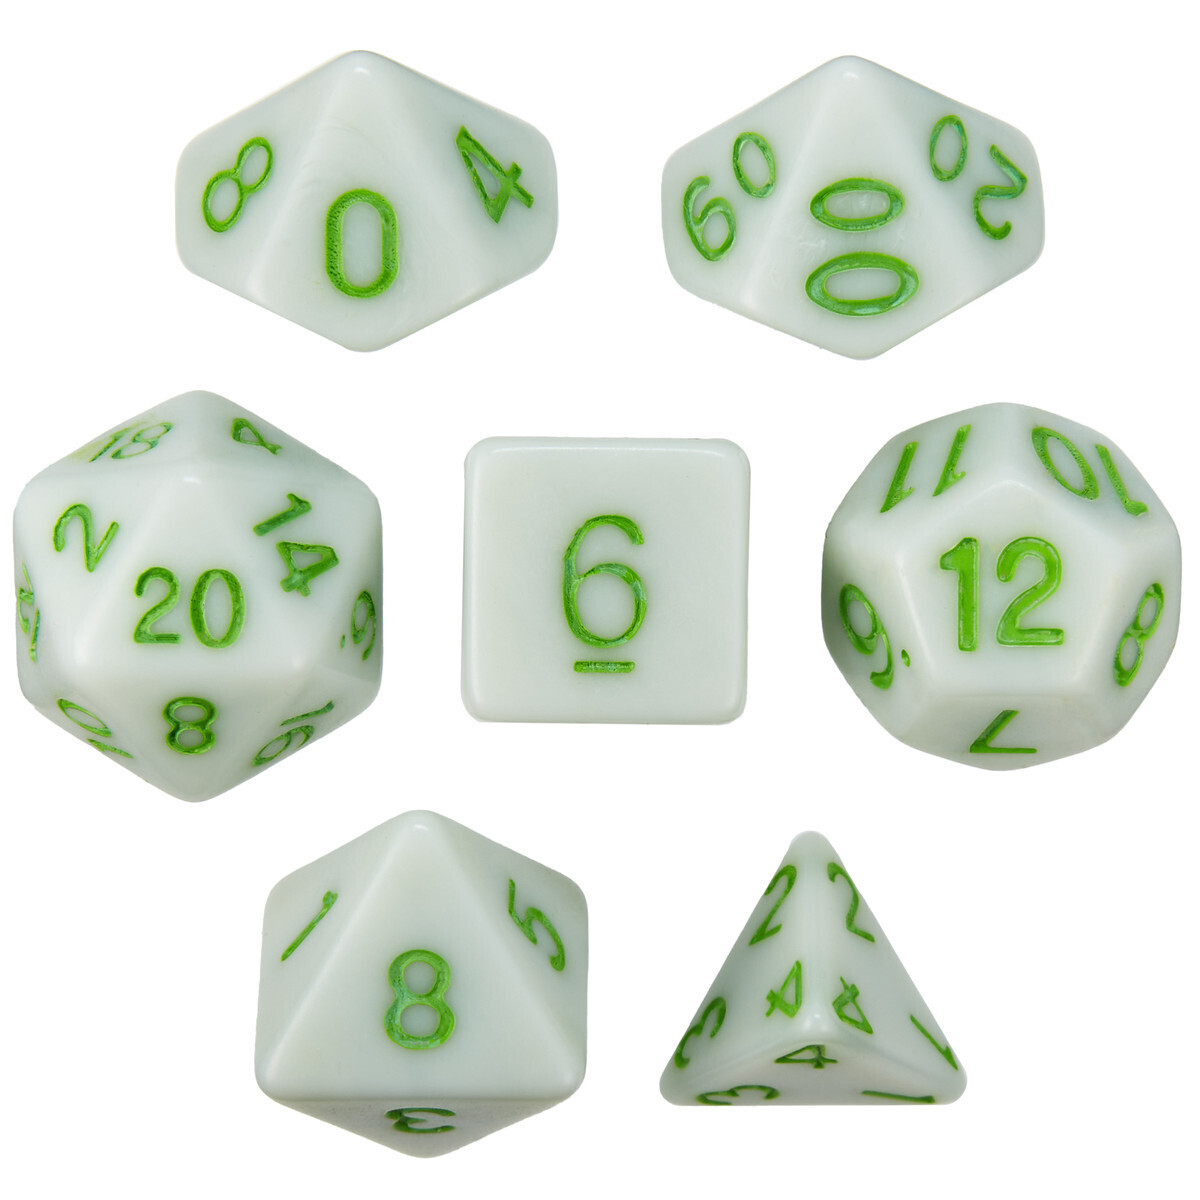 16mm 7 Die Polyhedral Set - Grave Moss - Solid Green With Green Paint - RPG Tabletop Games Roleplay Cards CCG Board Random Roll Decision